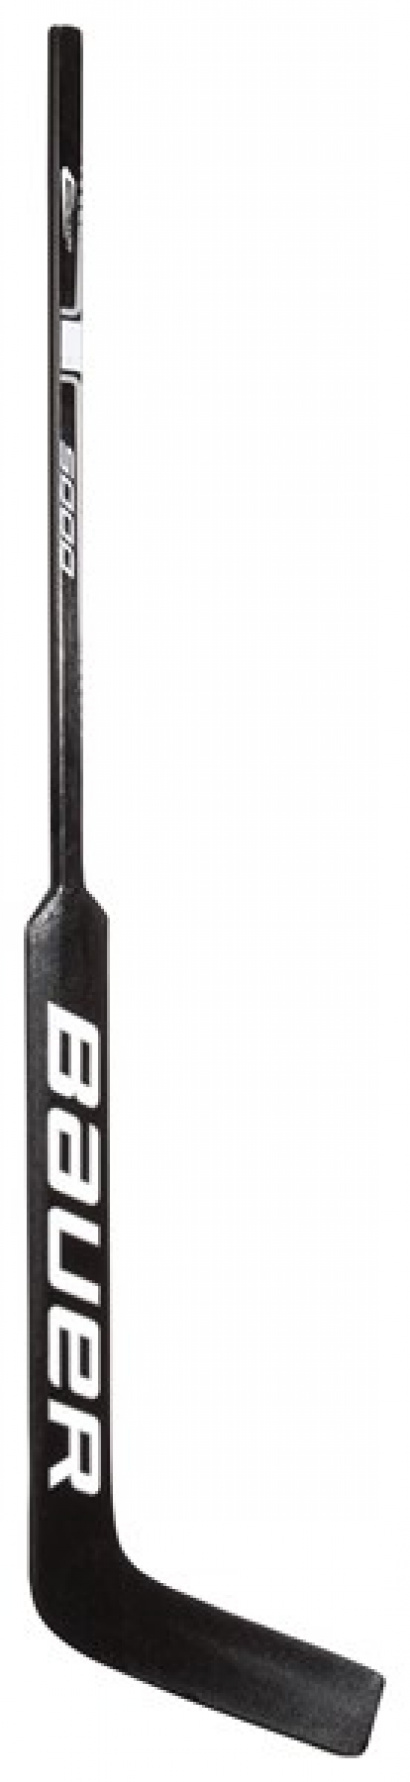 Goalie Stick Bauer Reactor 5000 Wood Yth P31/20